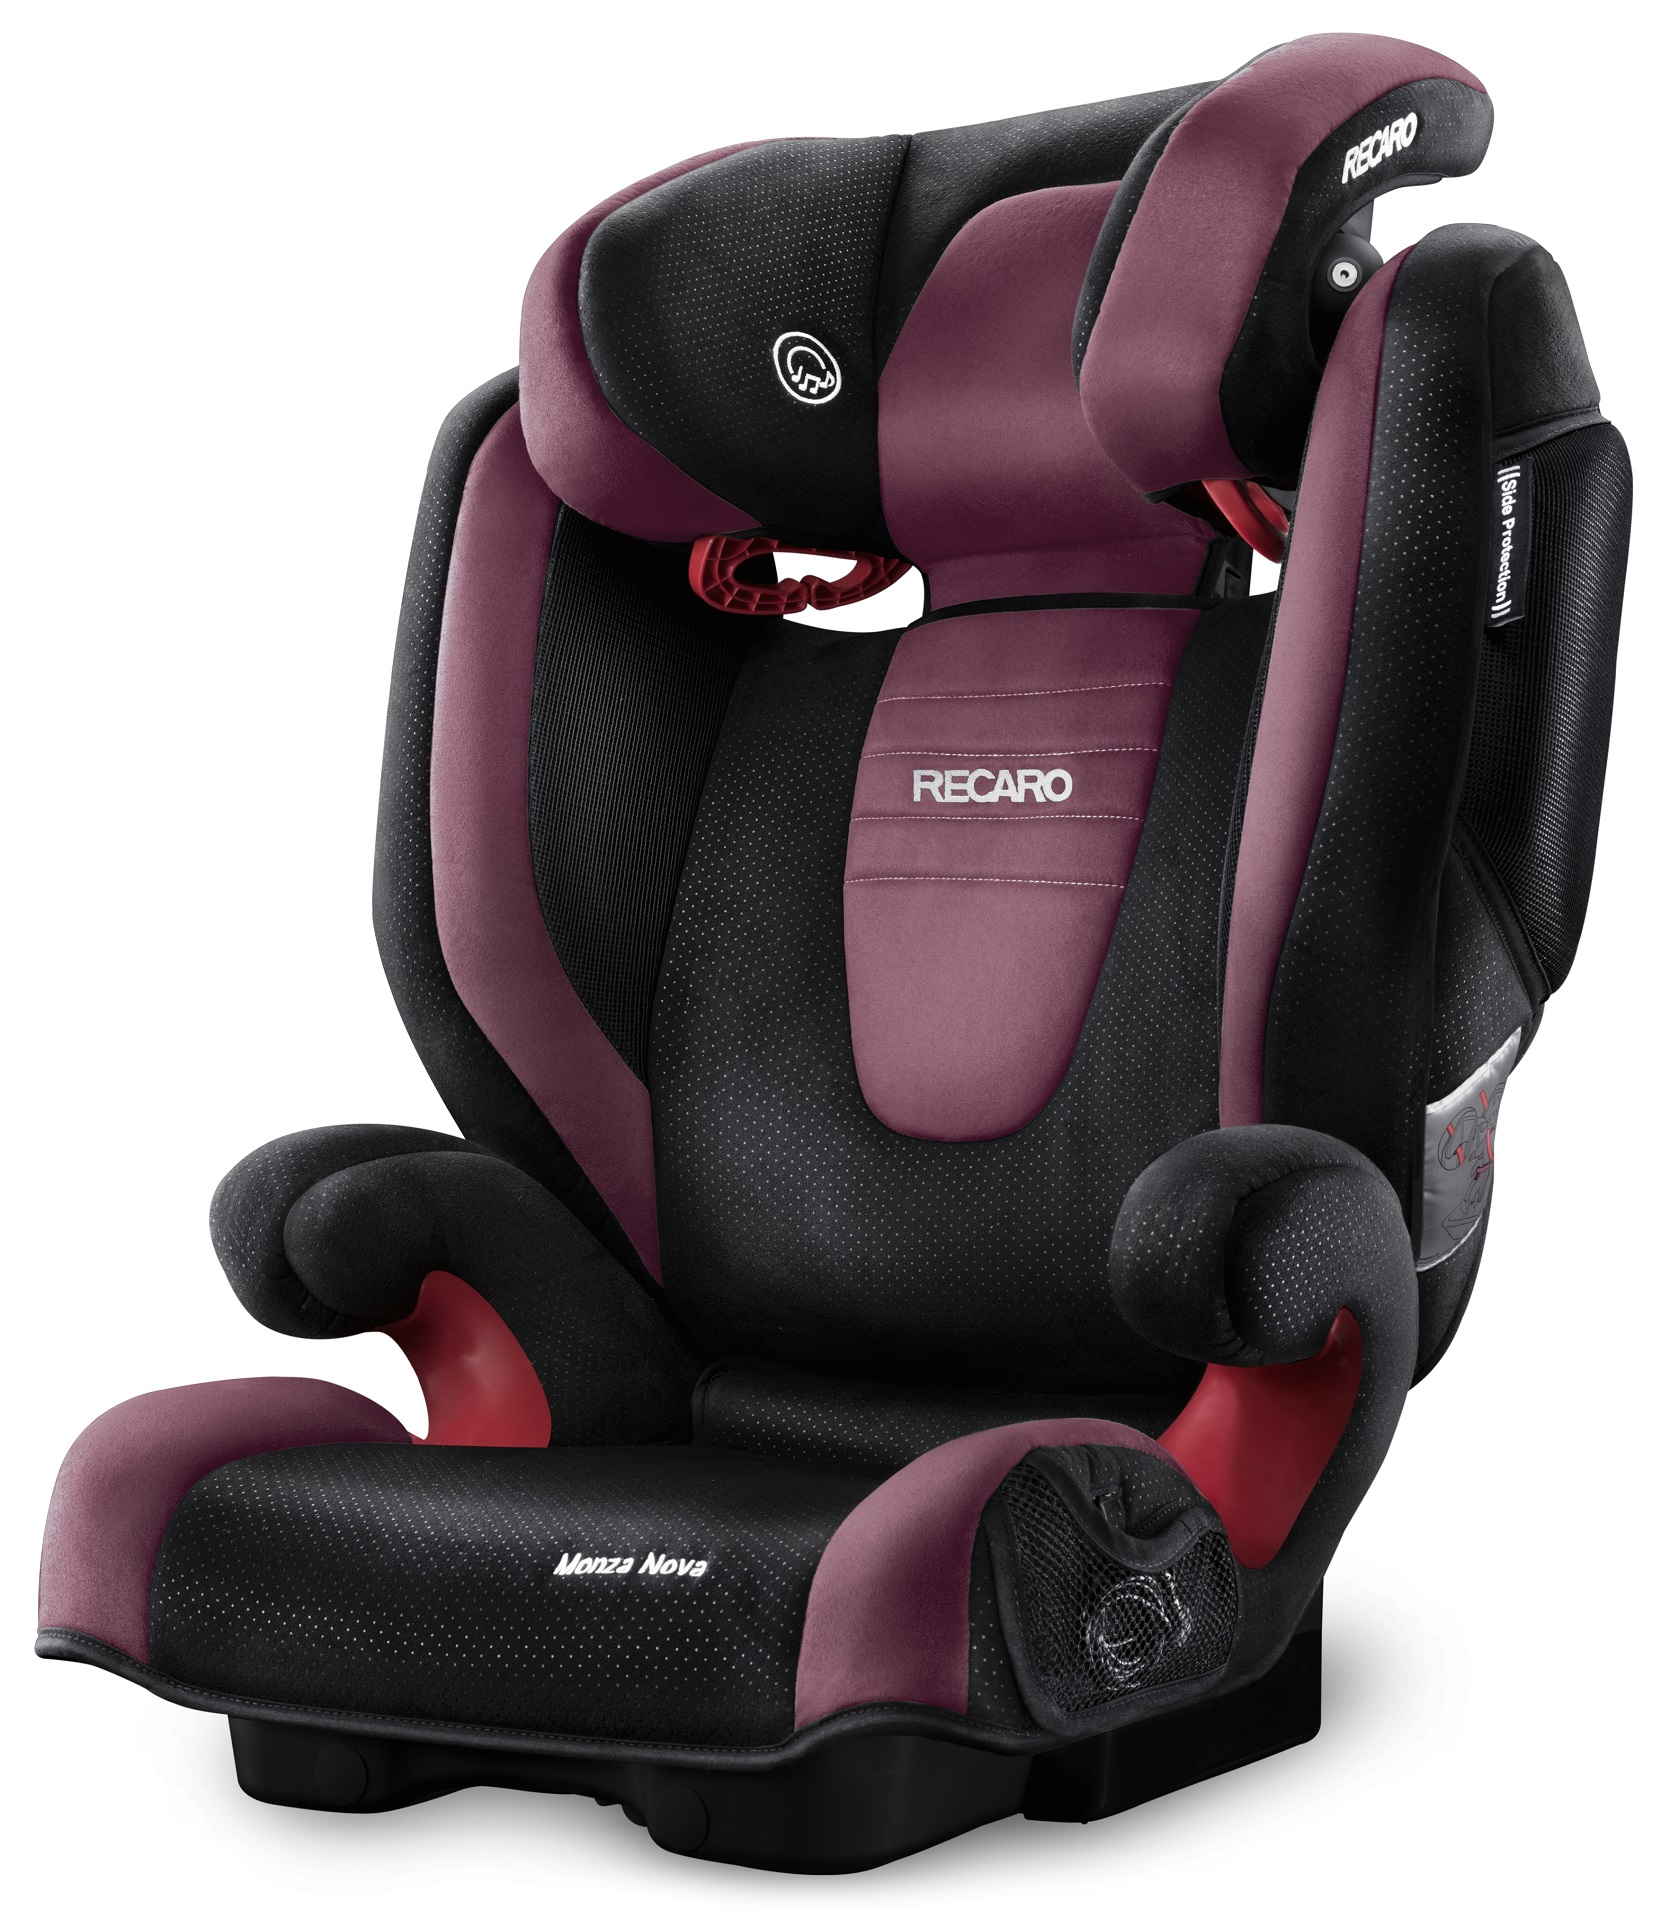 recaro child car seat monza nova 2 buy at kidsroom car seats. Black Bedroom Furniture Sets. Home Design Ideas